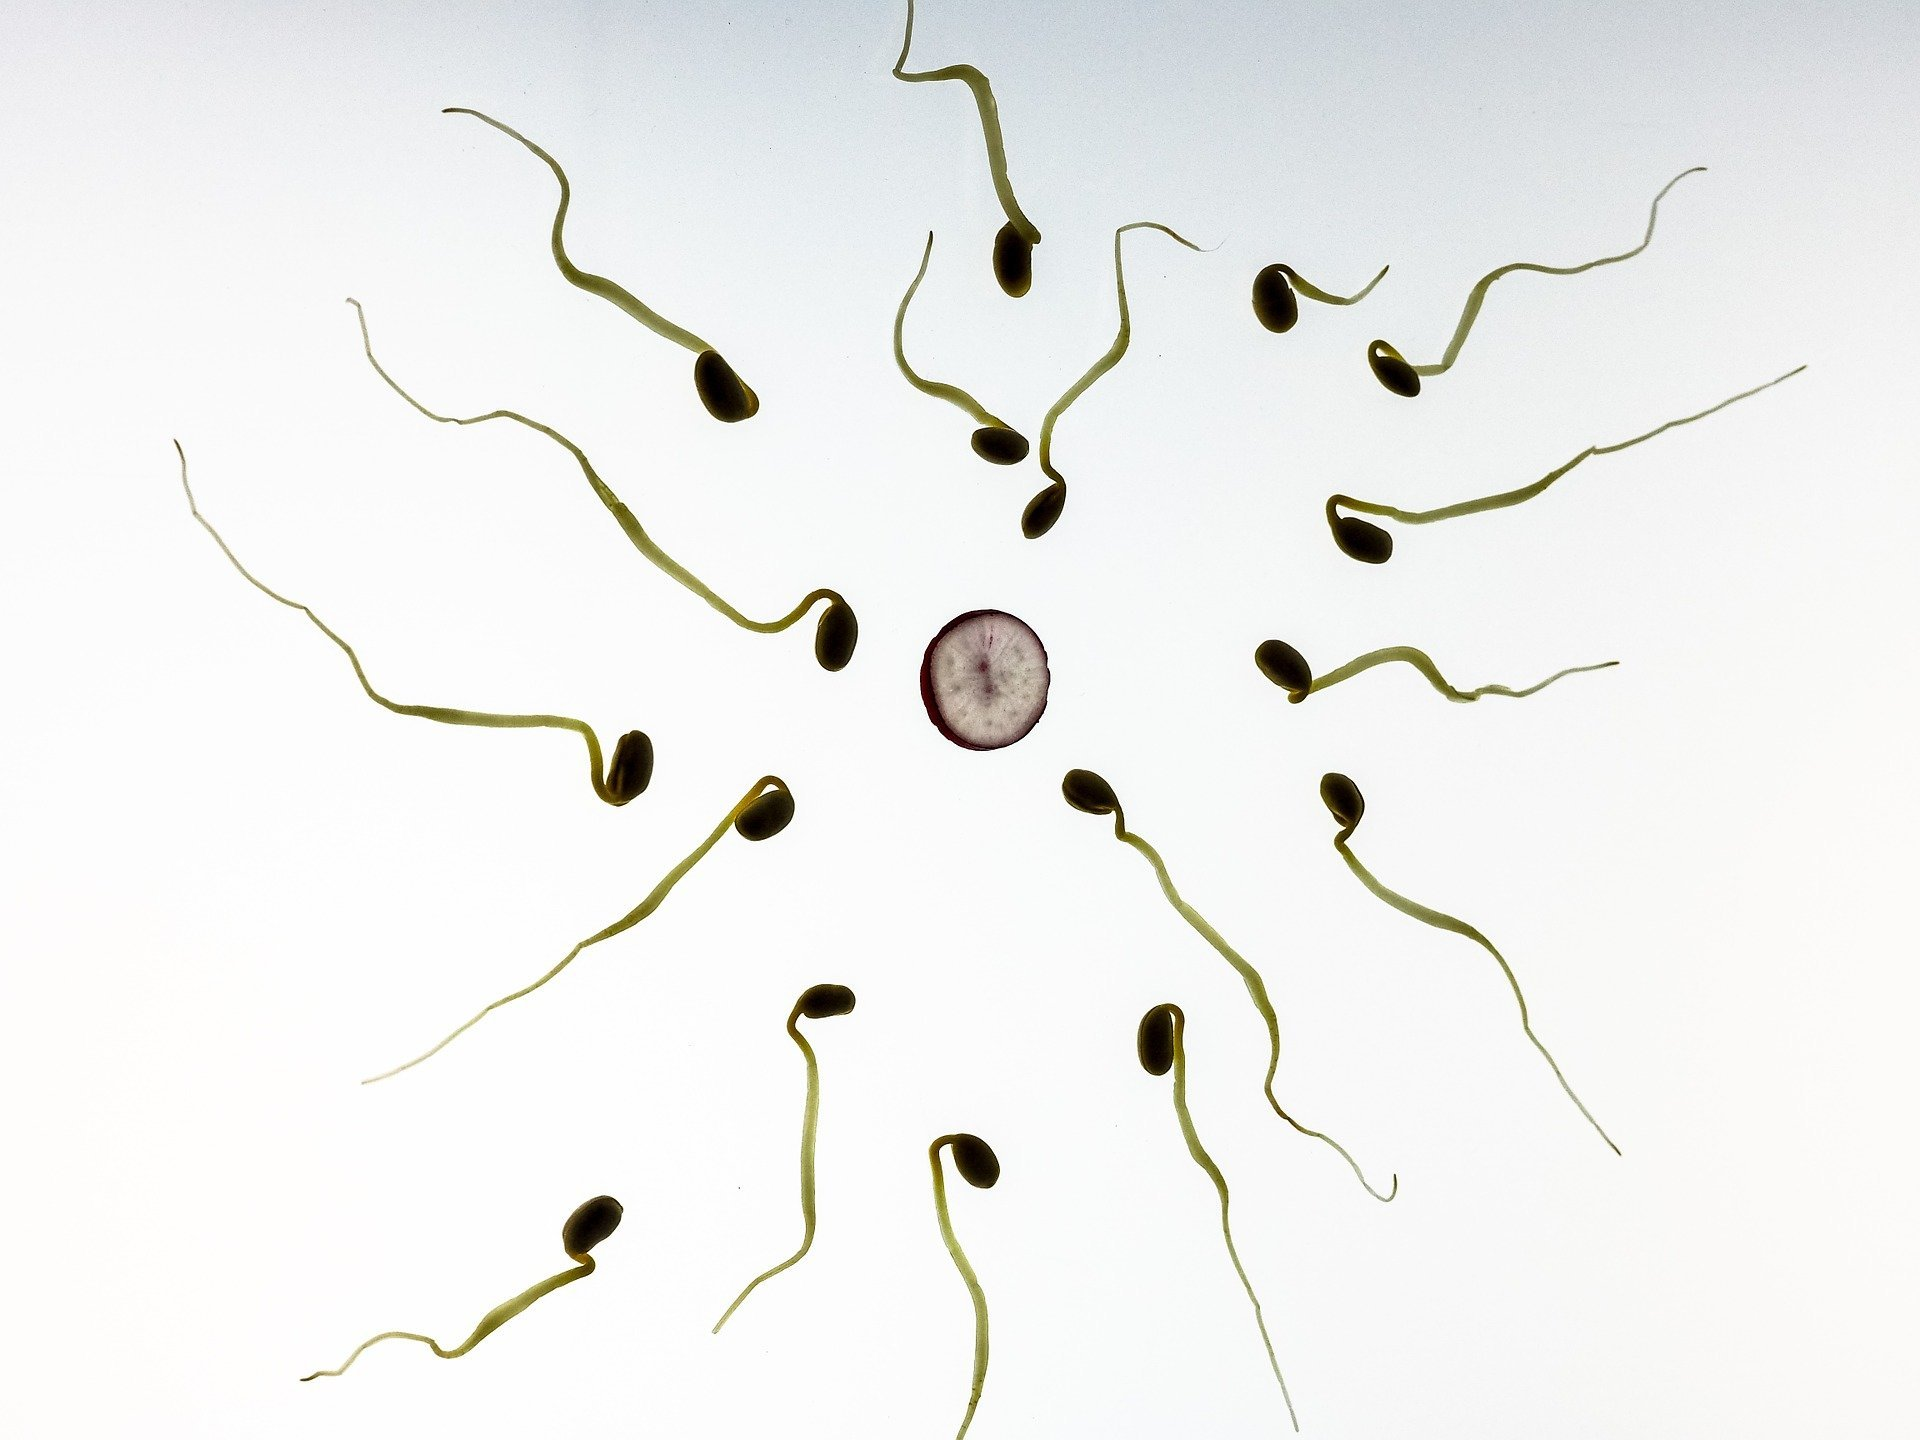 Breakthrough in understanding male infertility